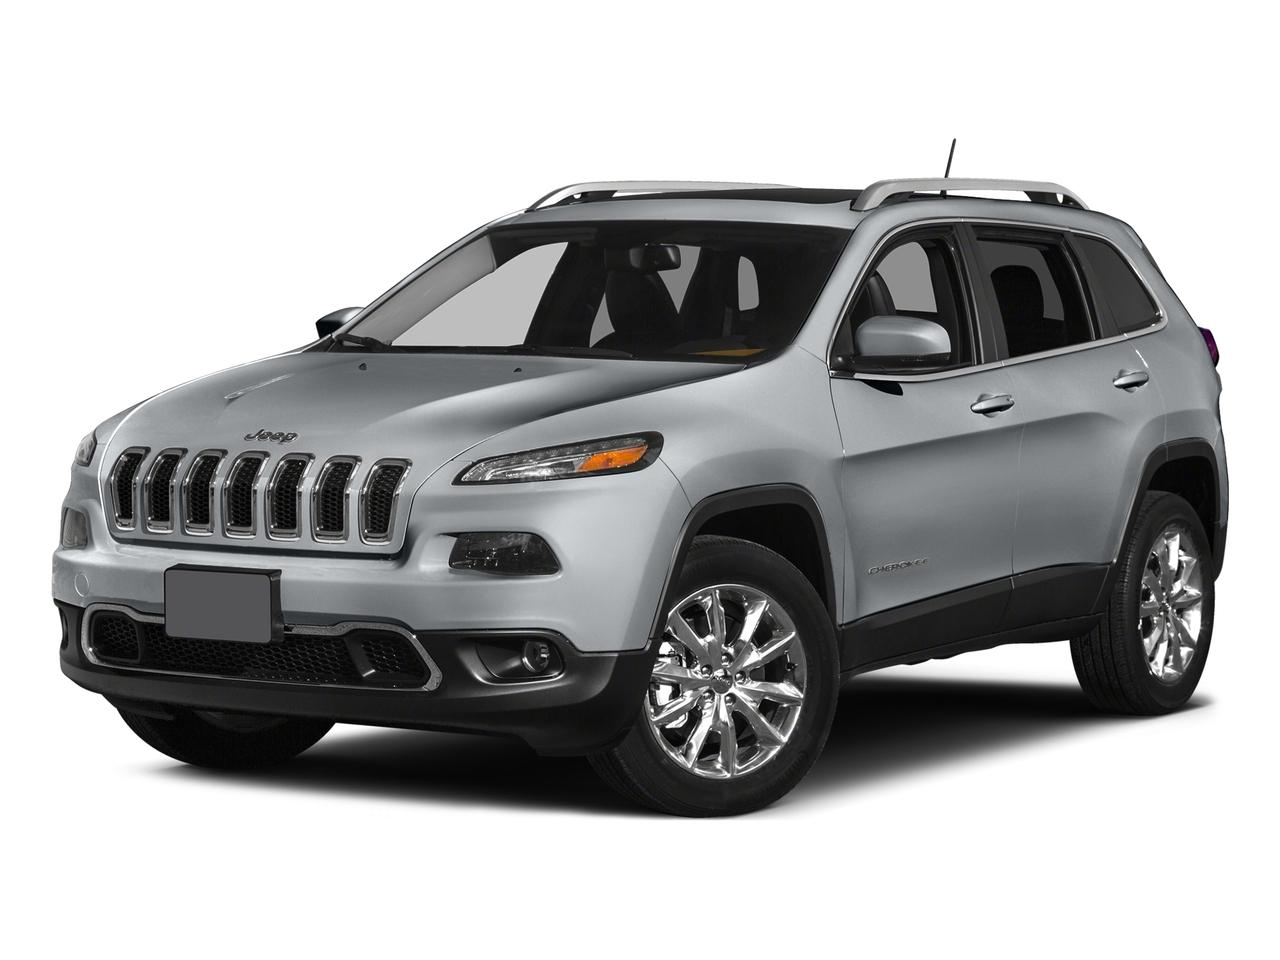 2015 Jeep Cherokee Vehicle Photo in Melbourne, FL 32901